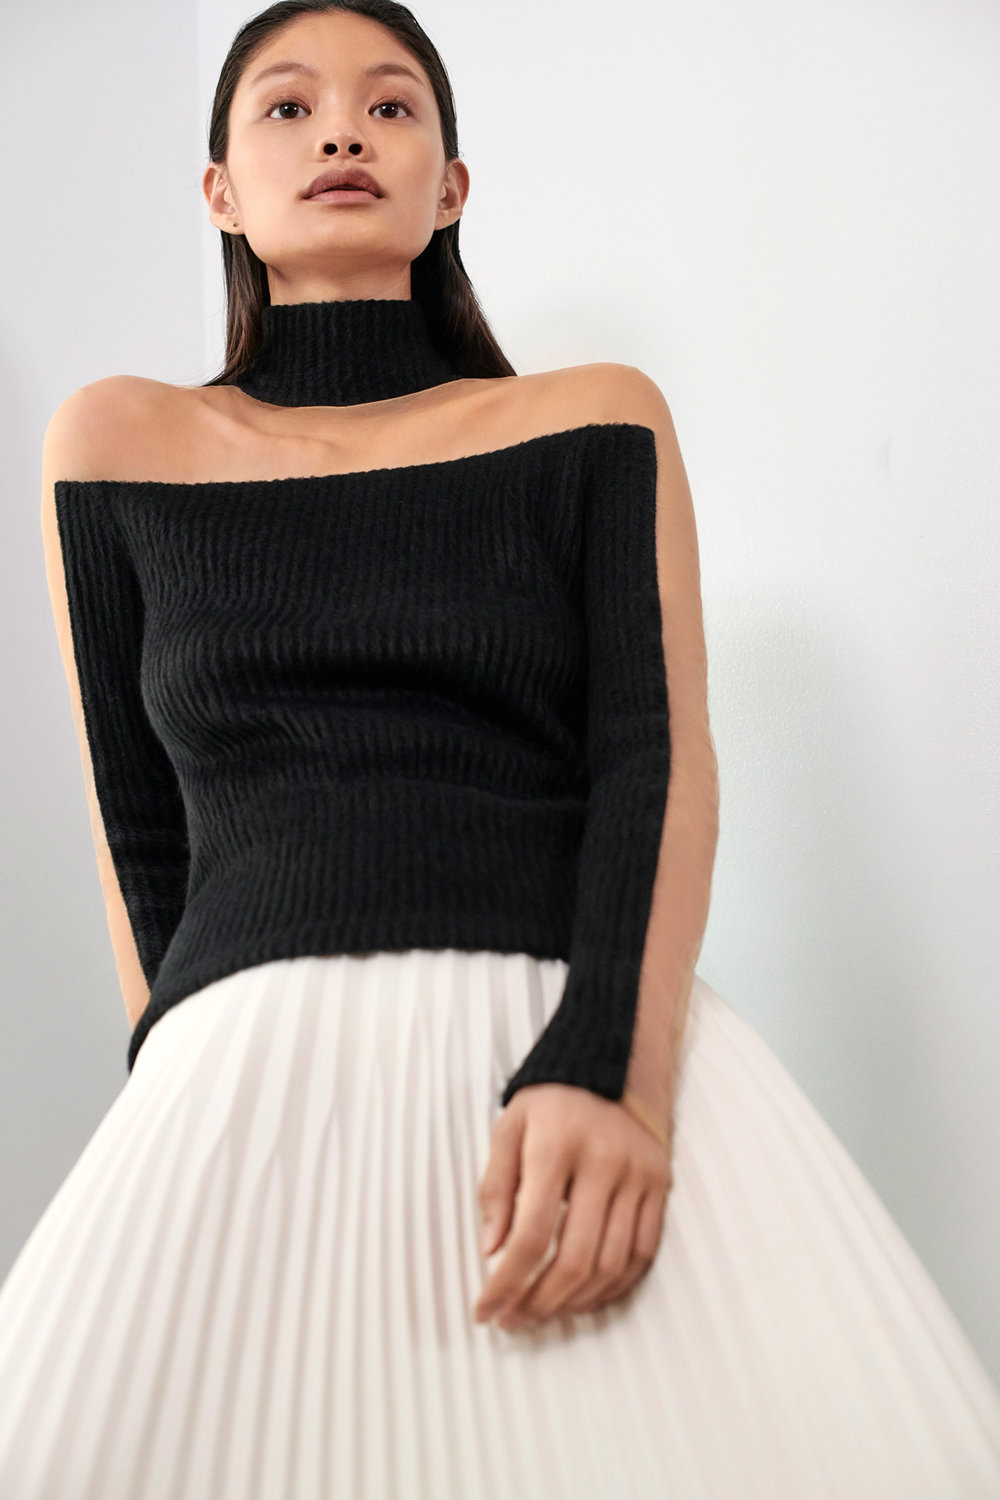 JULIANNA-BASS-PF19-07-The-Vicky-Top-&-The-Issi-Skirt.jpg